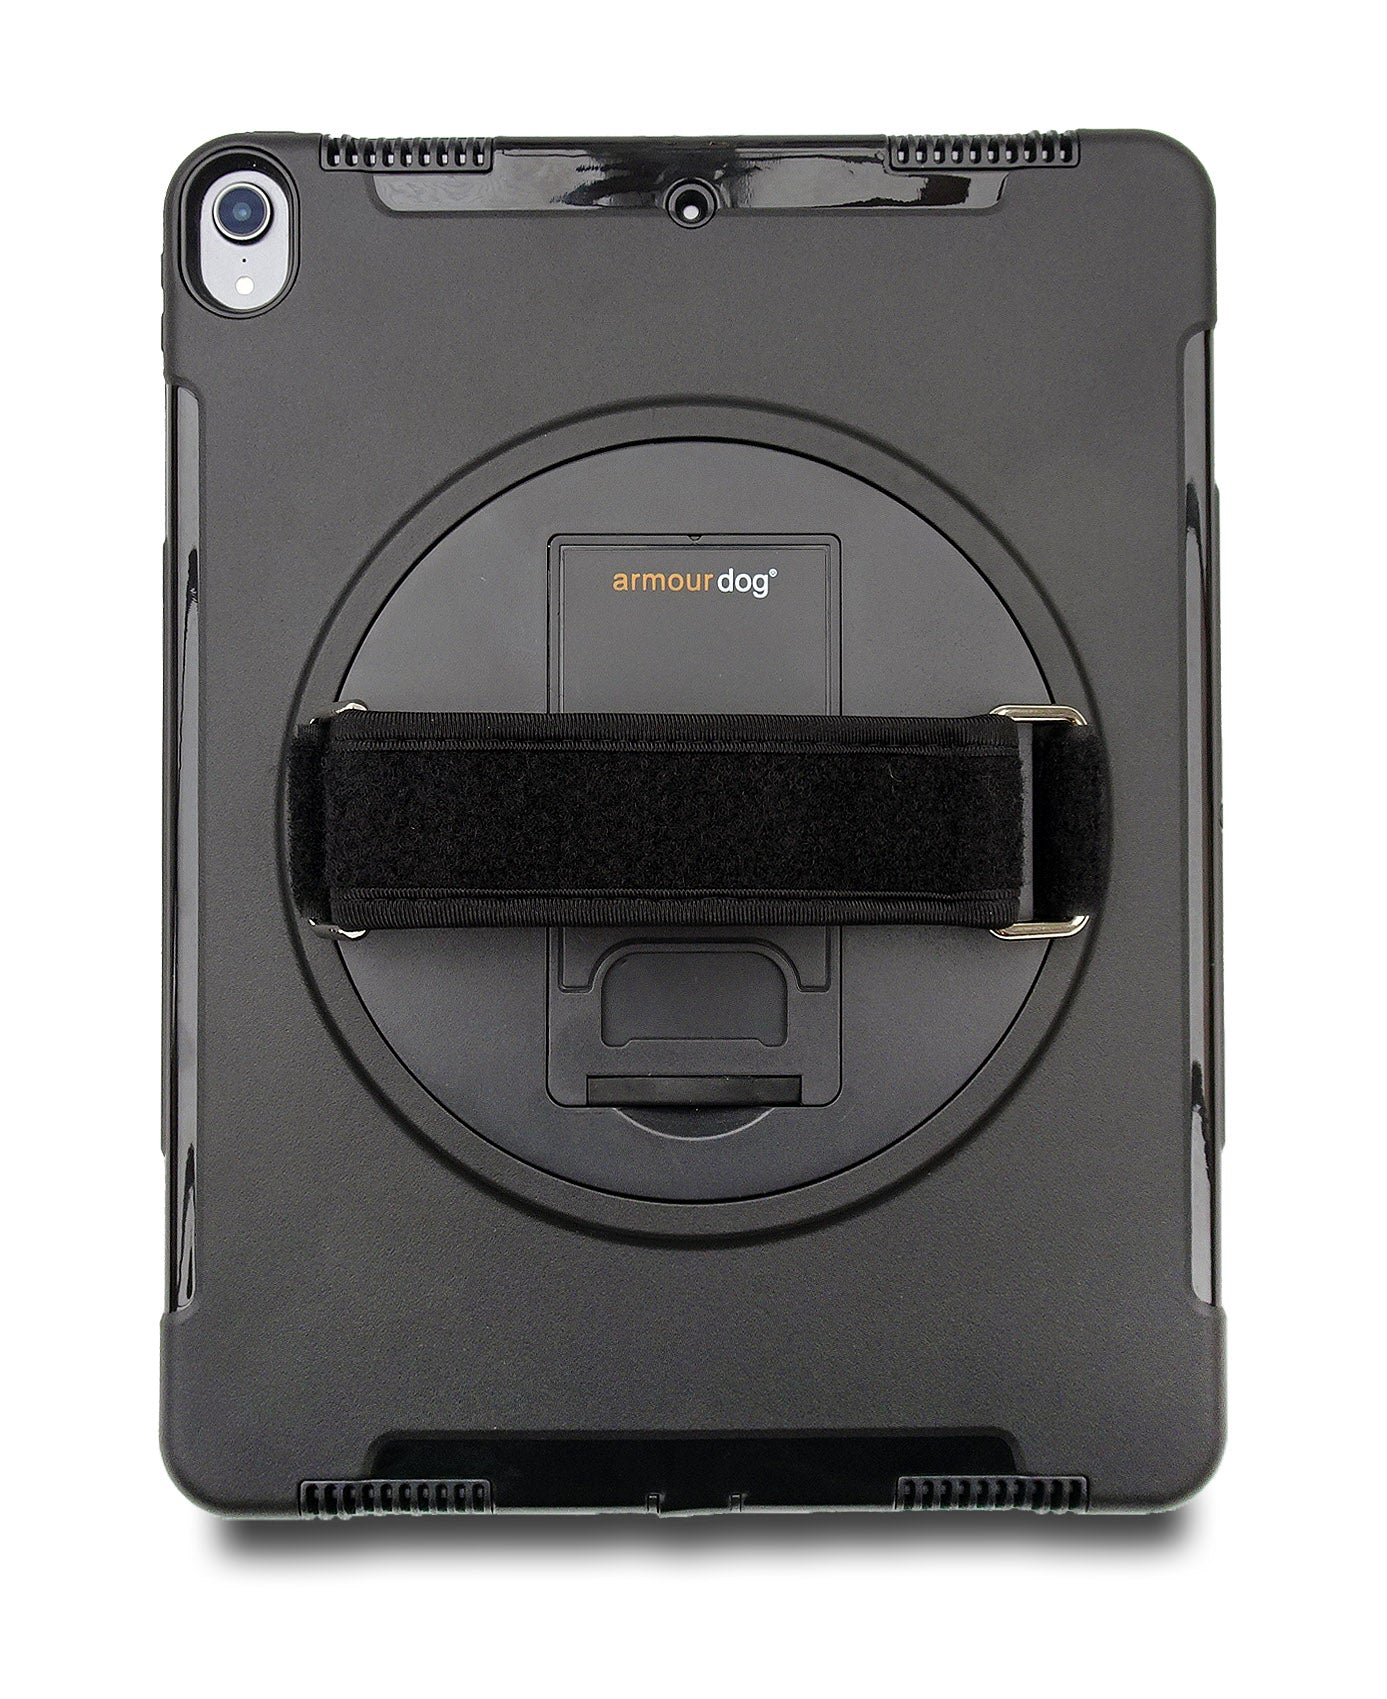 An adjustable hand strap is placed at the back of the case